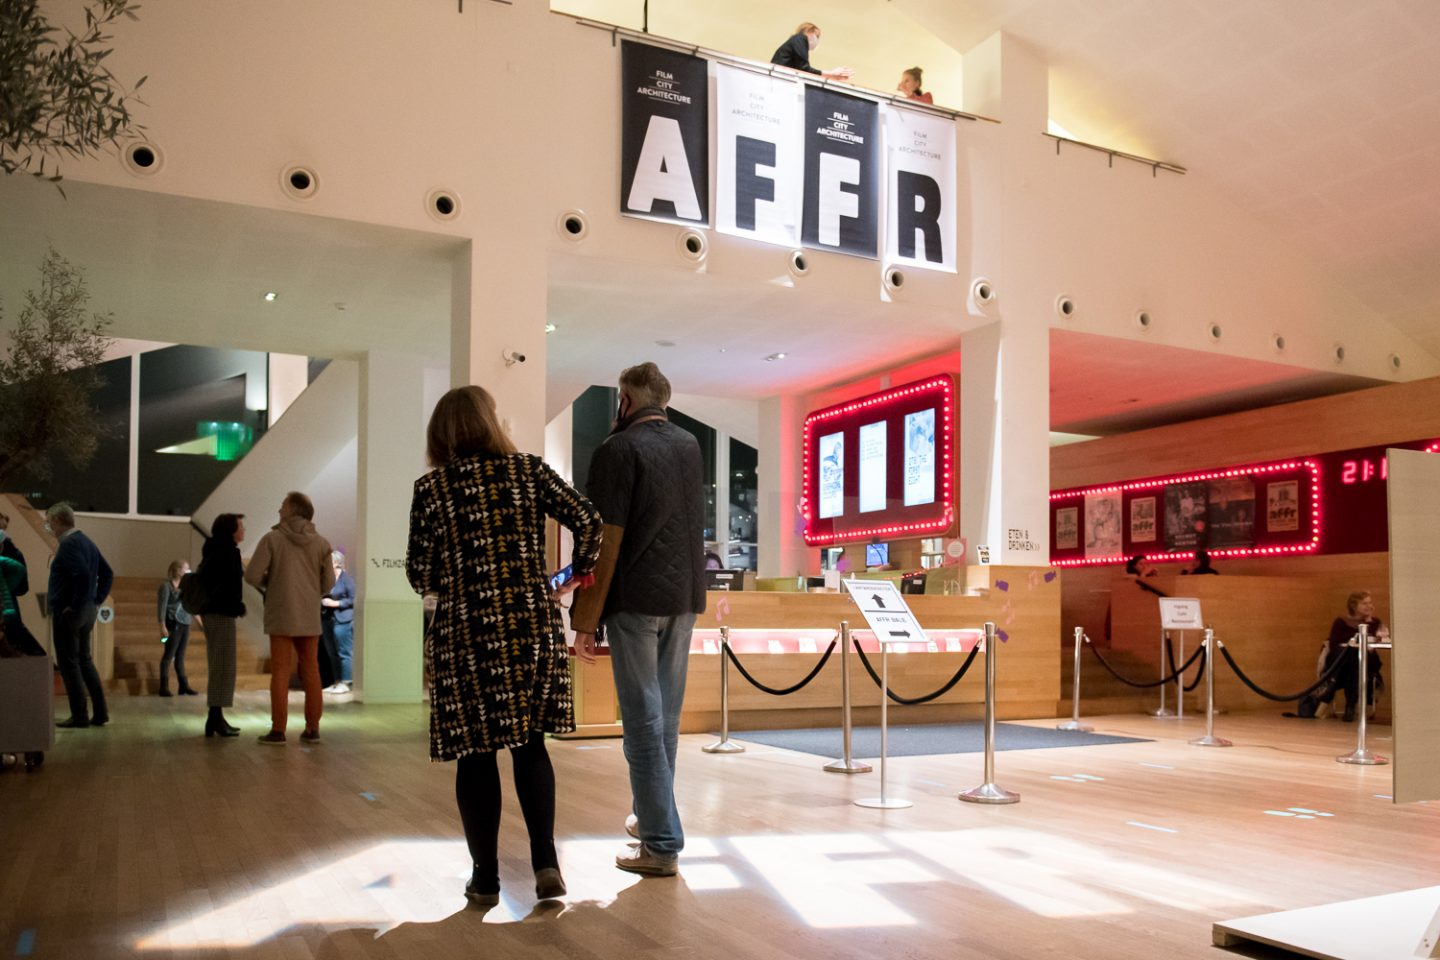 What do you think about AFFR 2020?